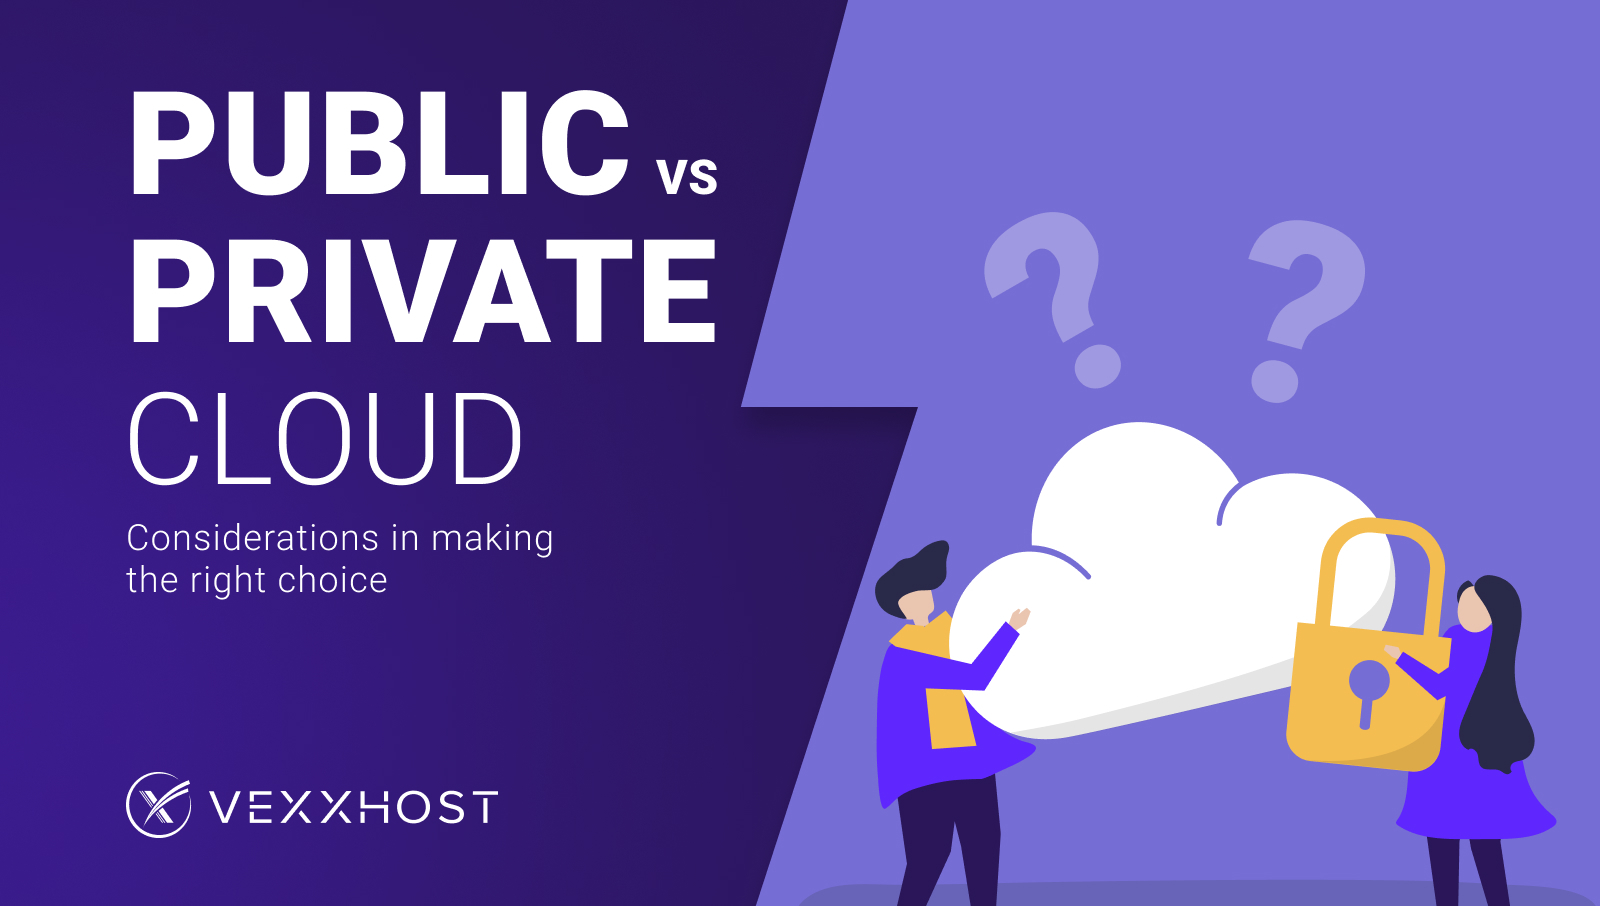 Public vs Private Cloud: Considerations in Making the Right Choice